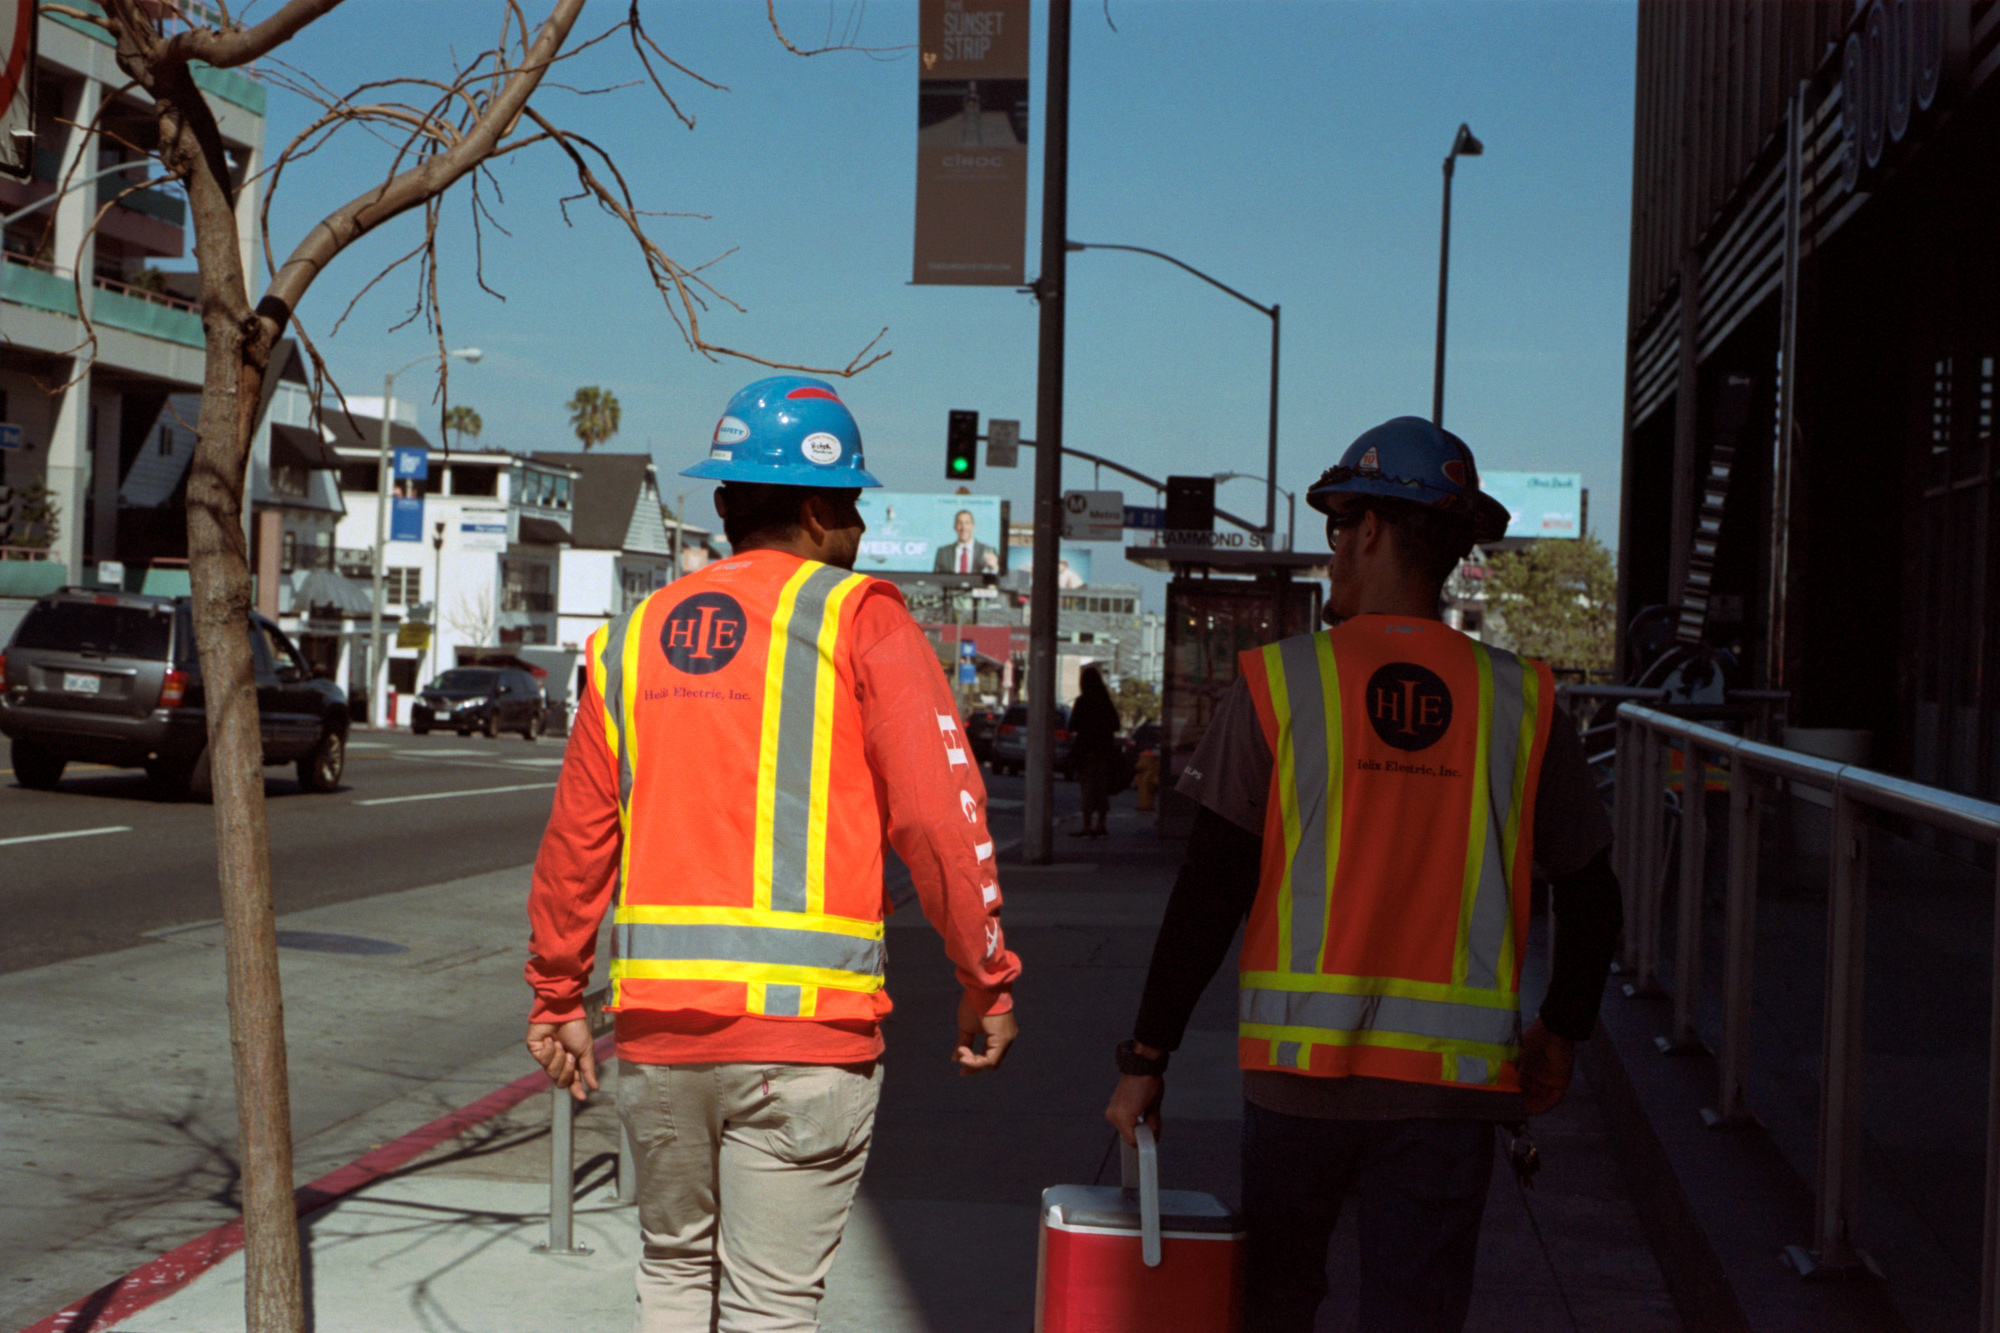 Builders, Sunset Blvd, LA, Omg Your English, Photography by Ioannis Koussertari